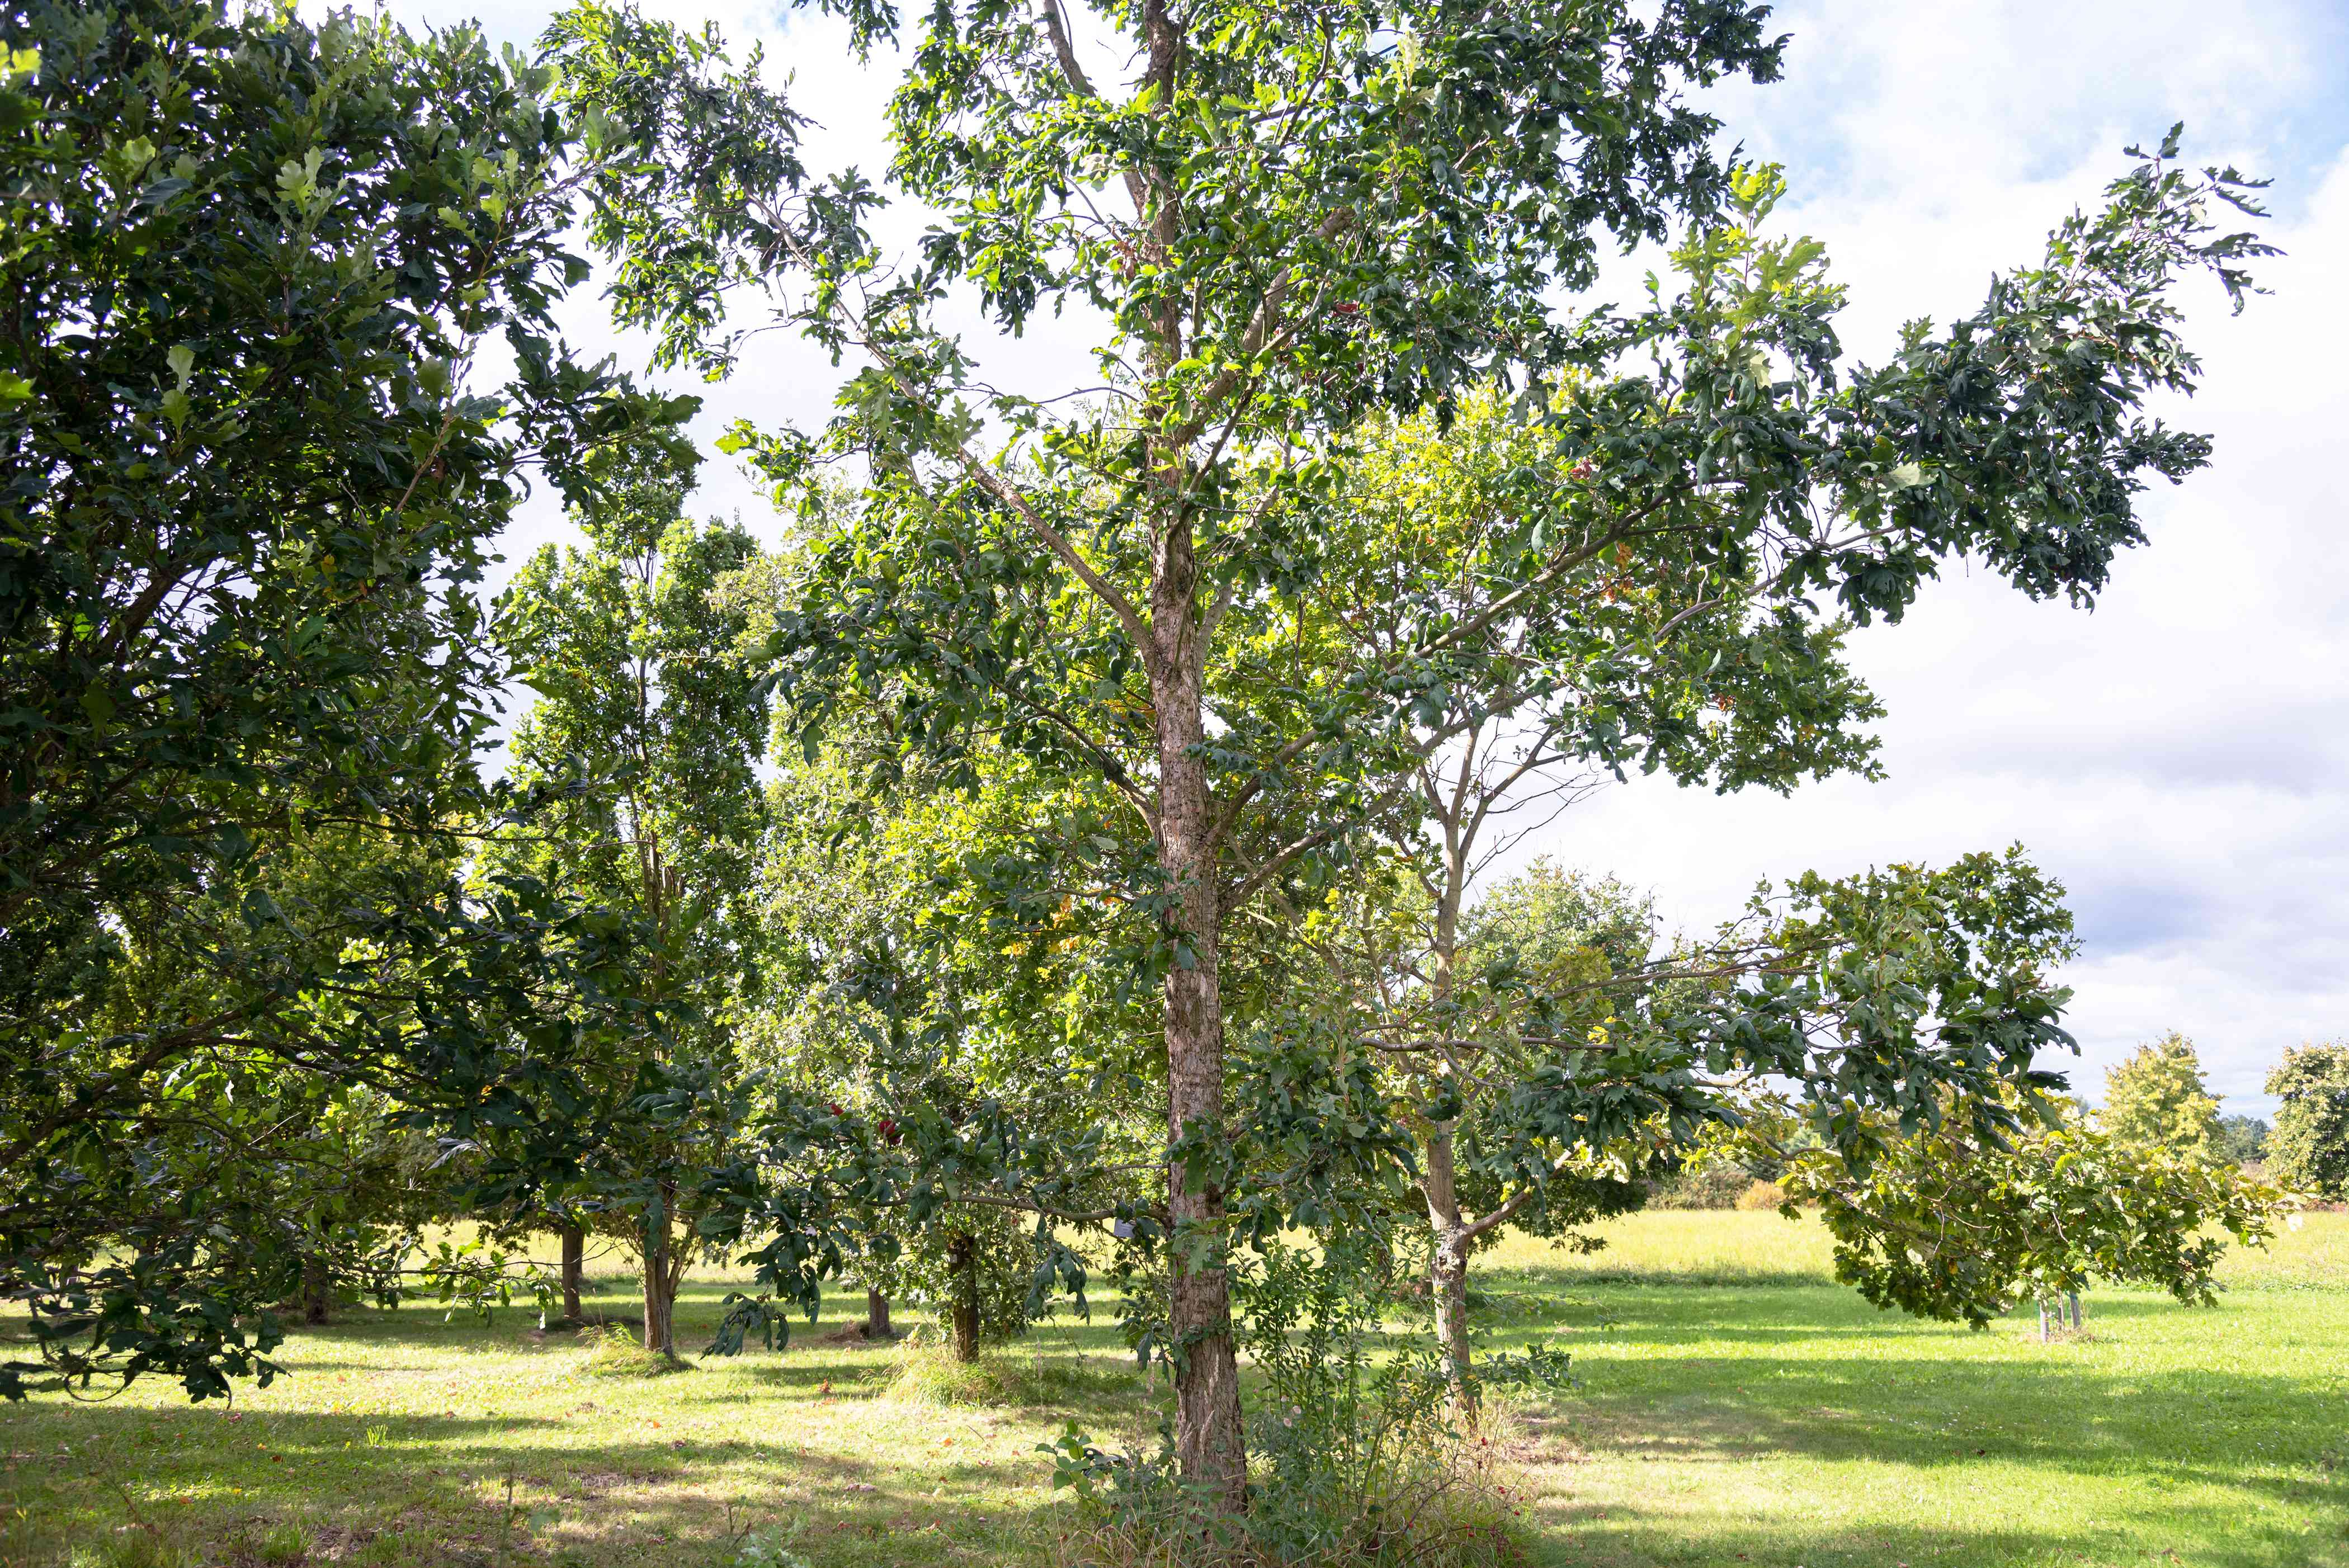 White oak tree with tall trunk and short extending branches in sunlight